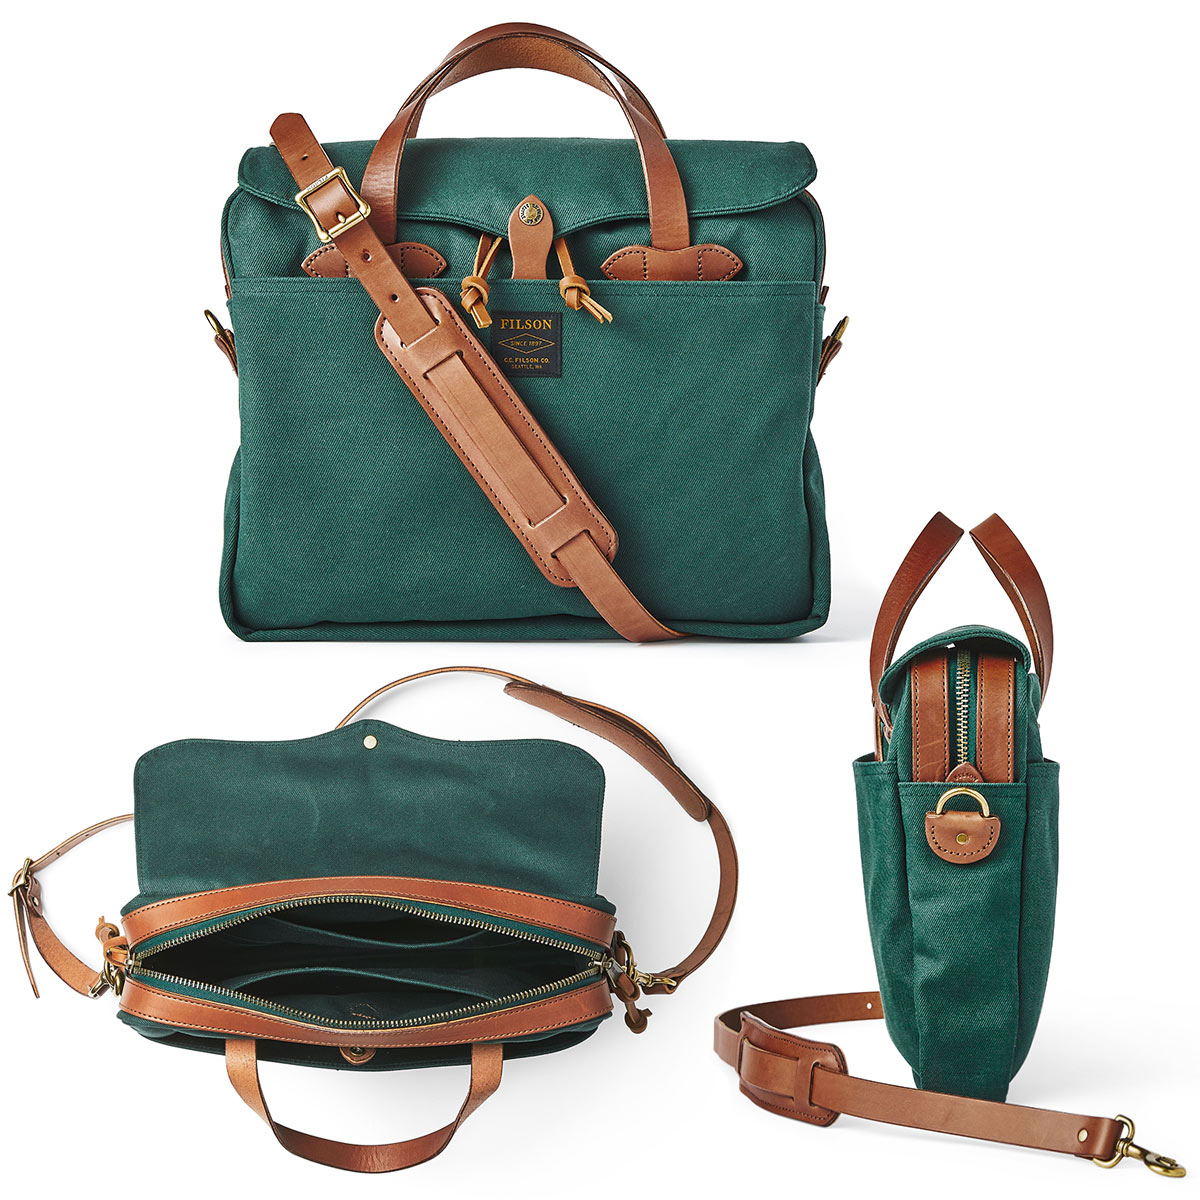 Filson Original Briefcase Hemlock, extraordinary bag for an ordinary day